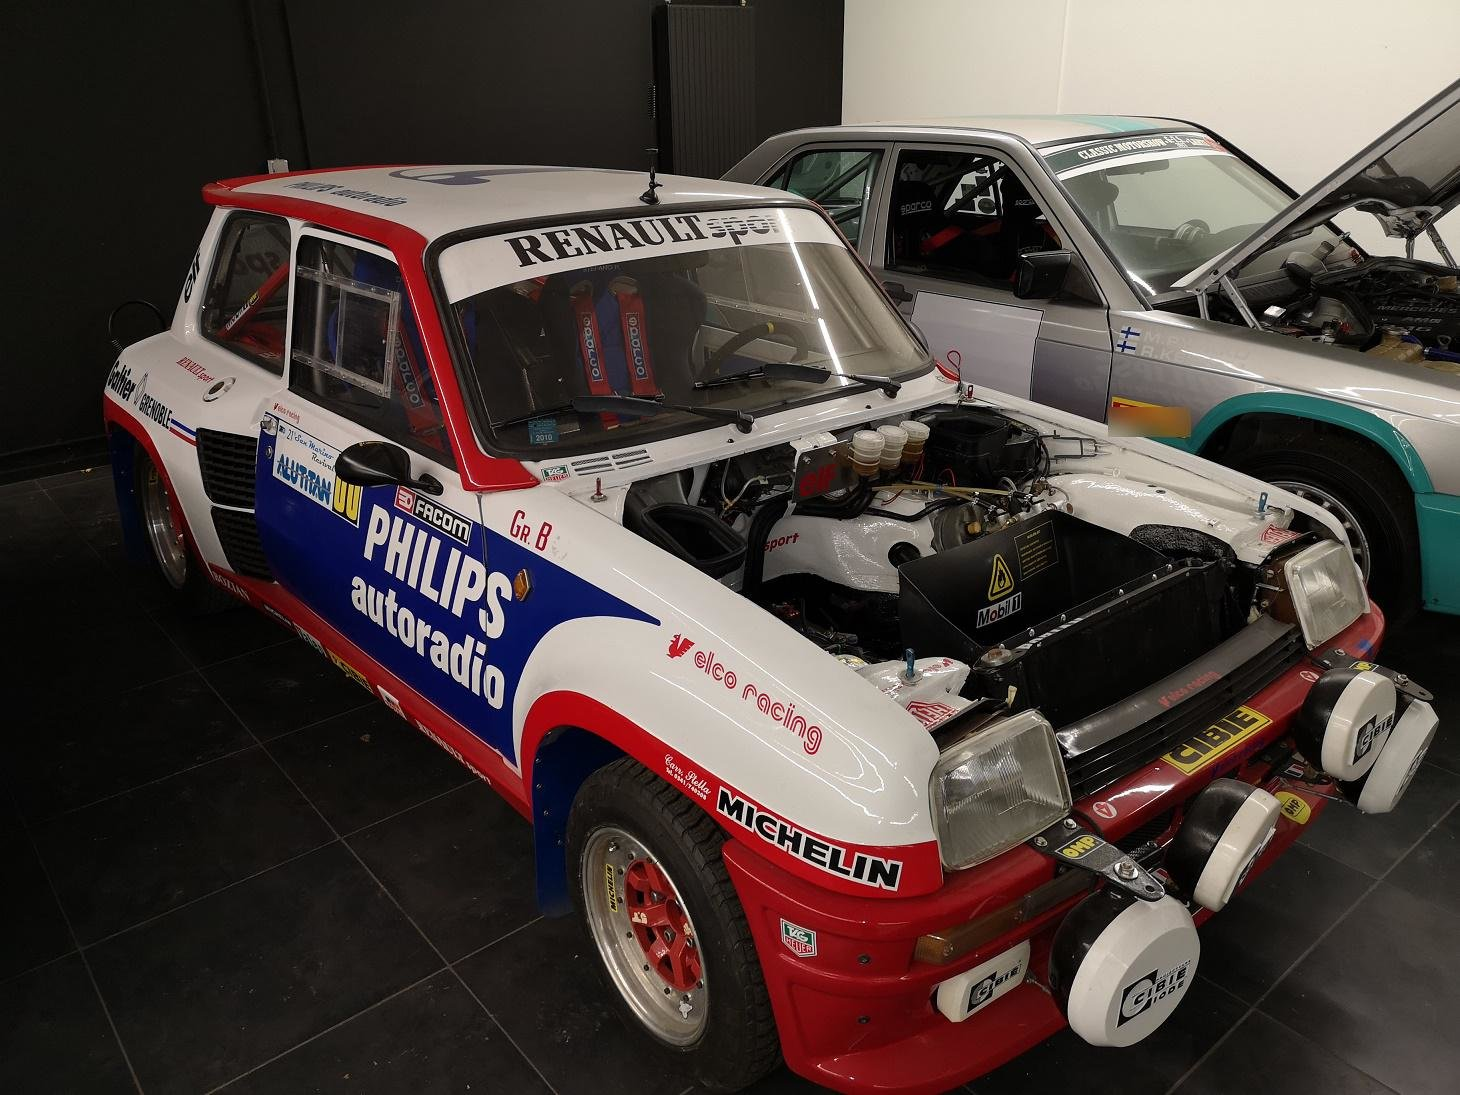 1981 Renault R5 turbo1 For Sale (picture 2 of 6)